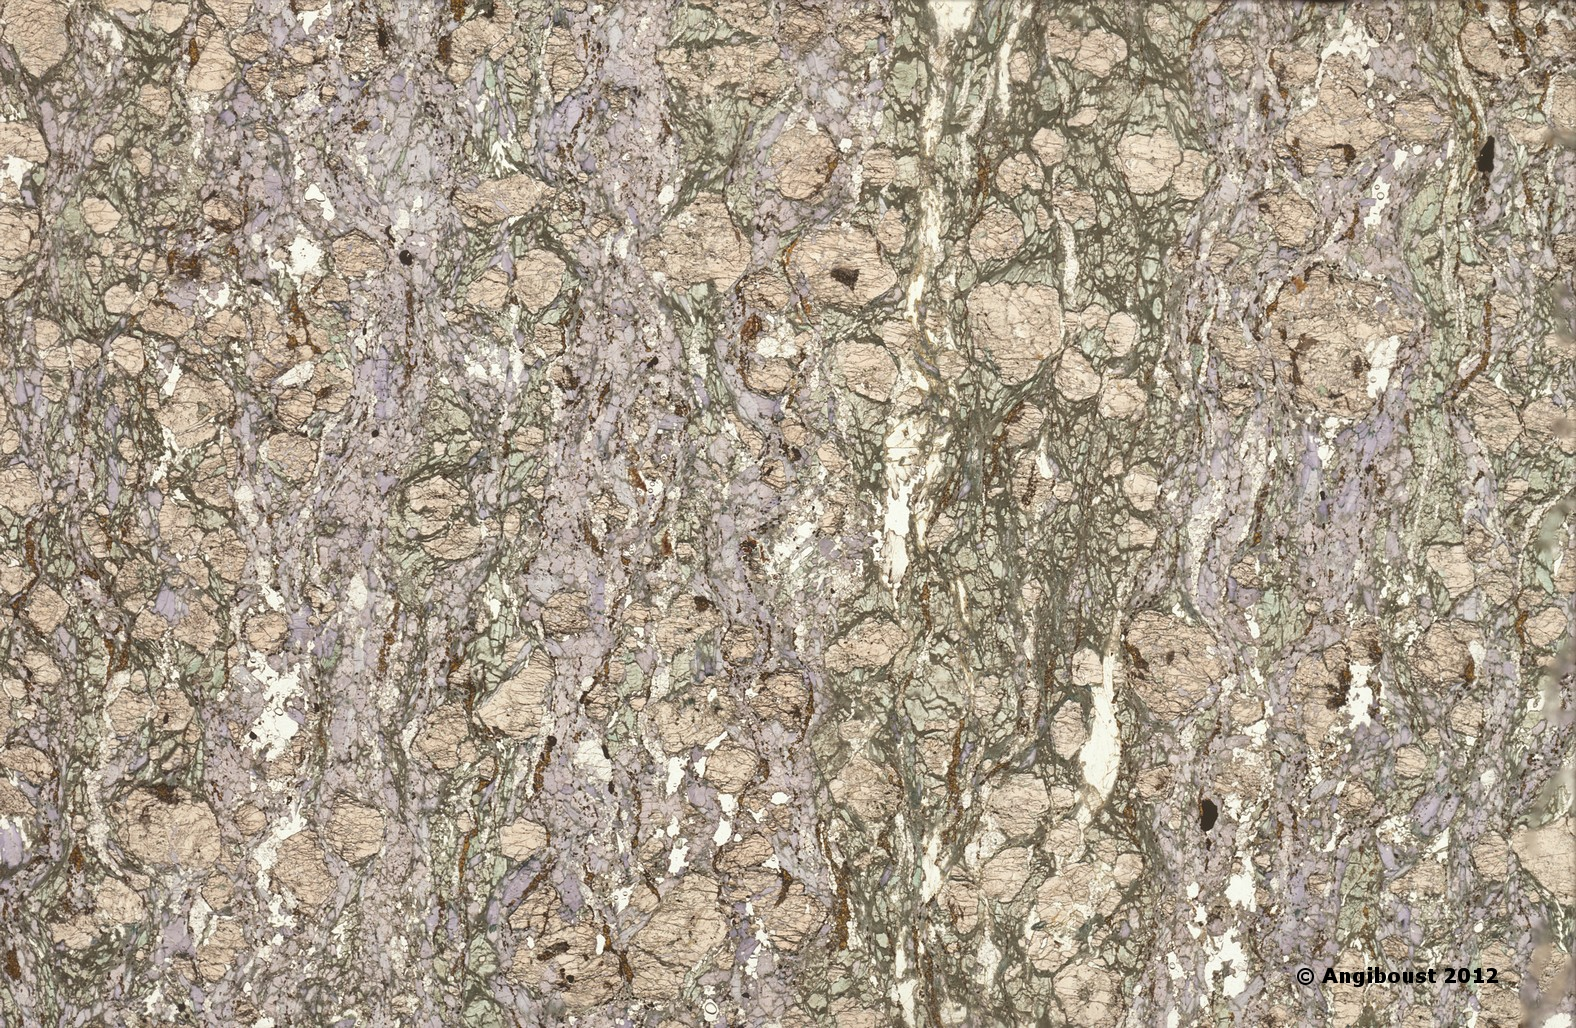 Eclogite thin section